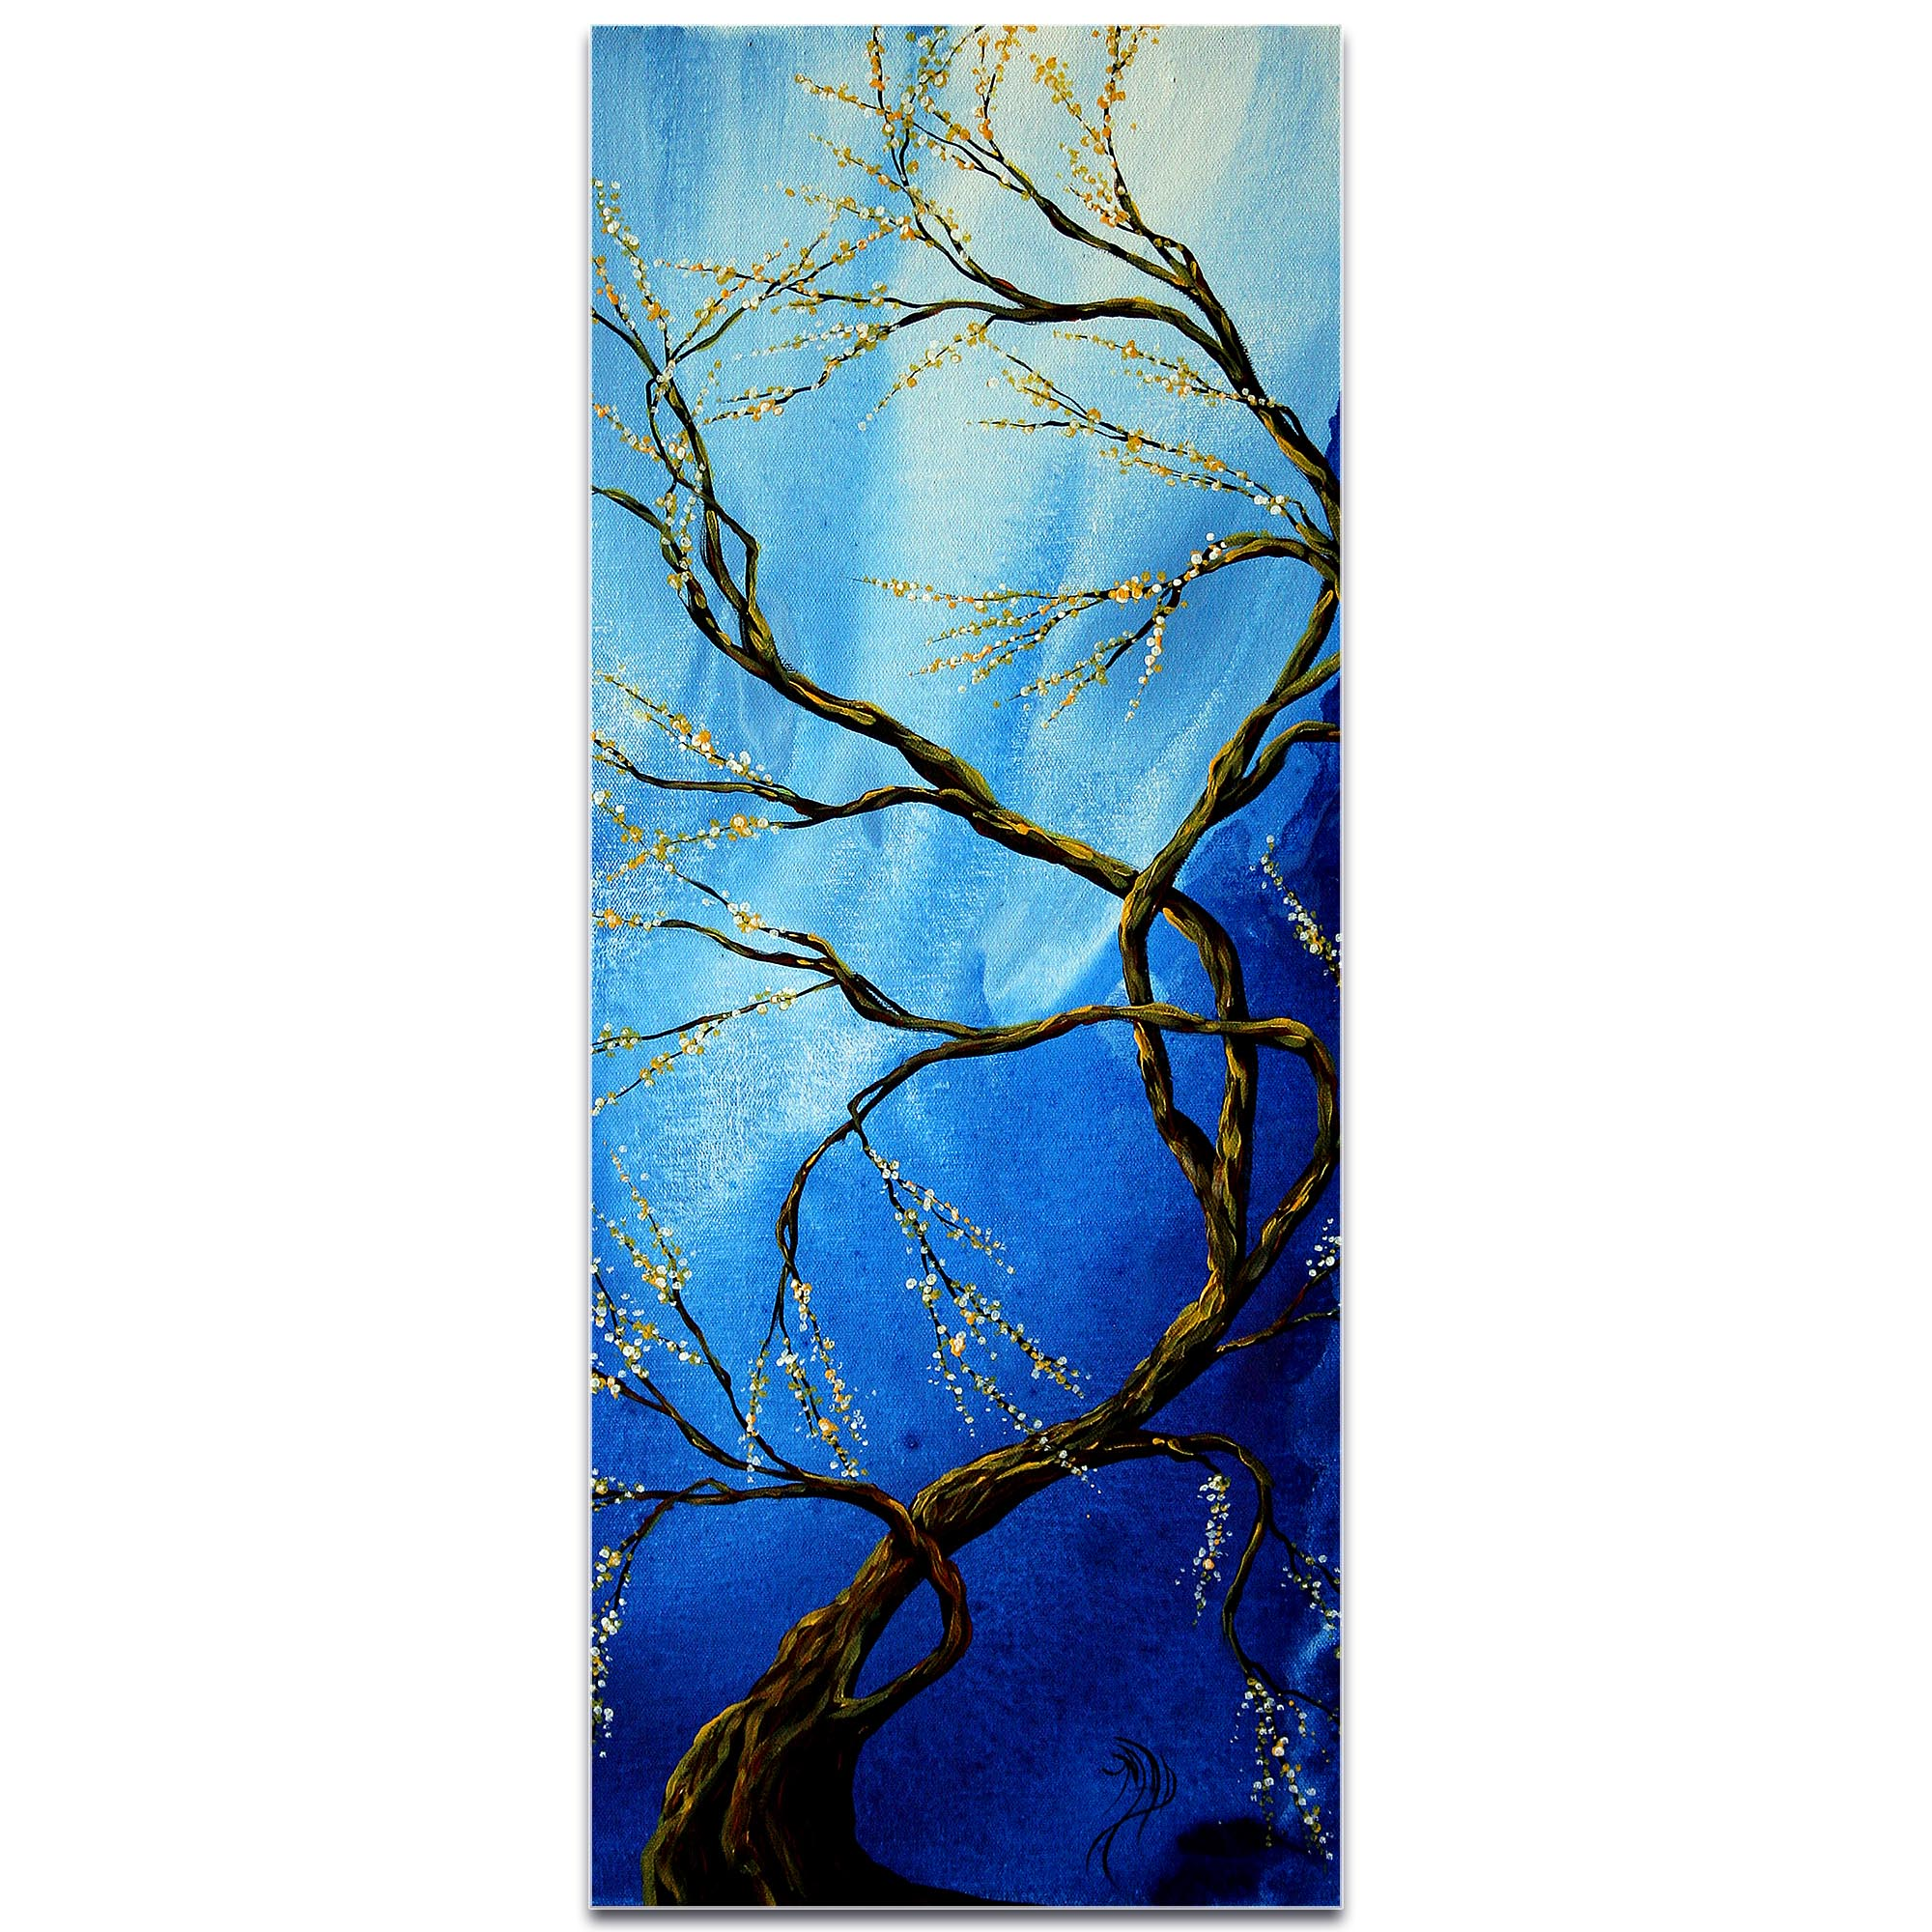 Landscape Painting 'Infinite Heights' - Abstract Tree Art on Metal or Acrylic - Image 2